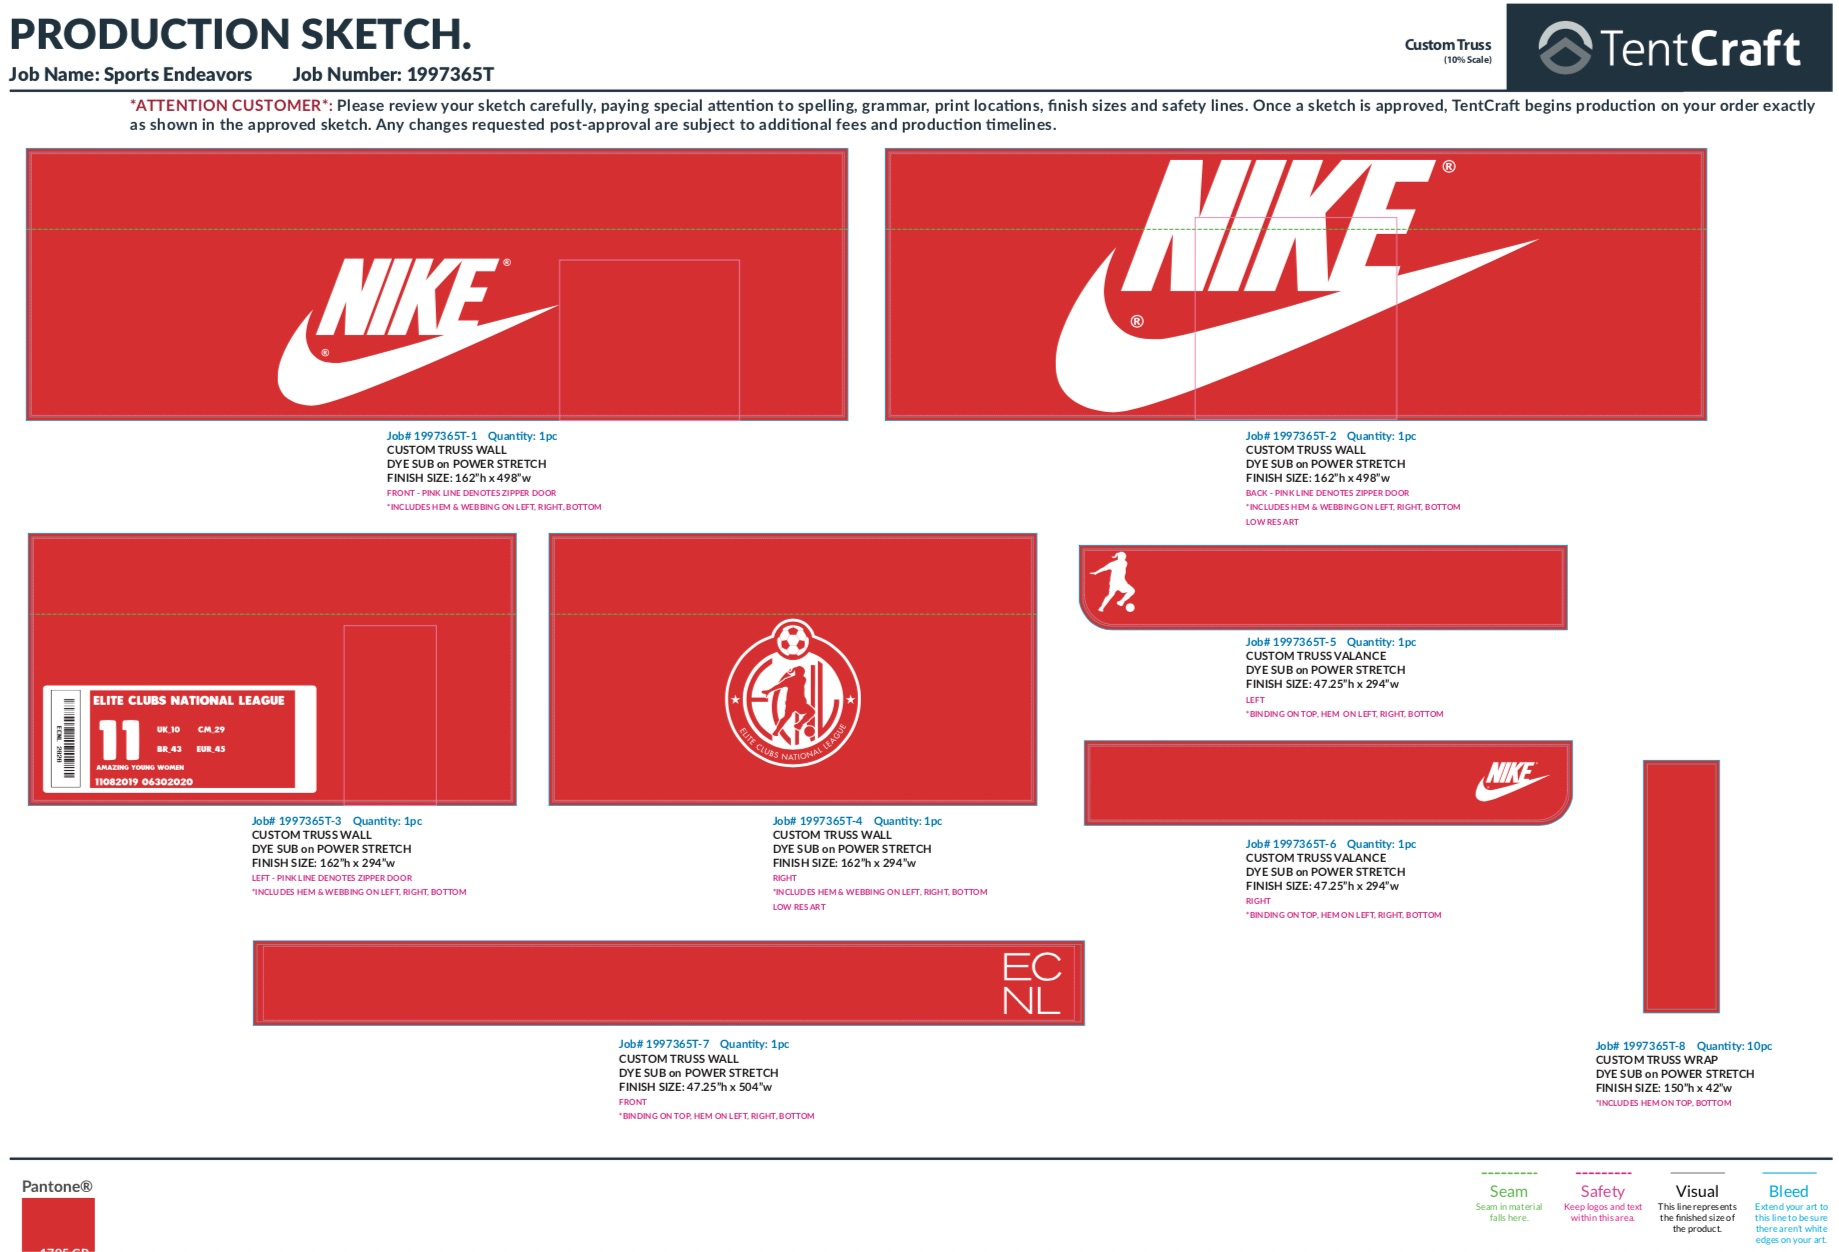 experiential manufacturing giant Nike shoebox panel